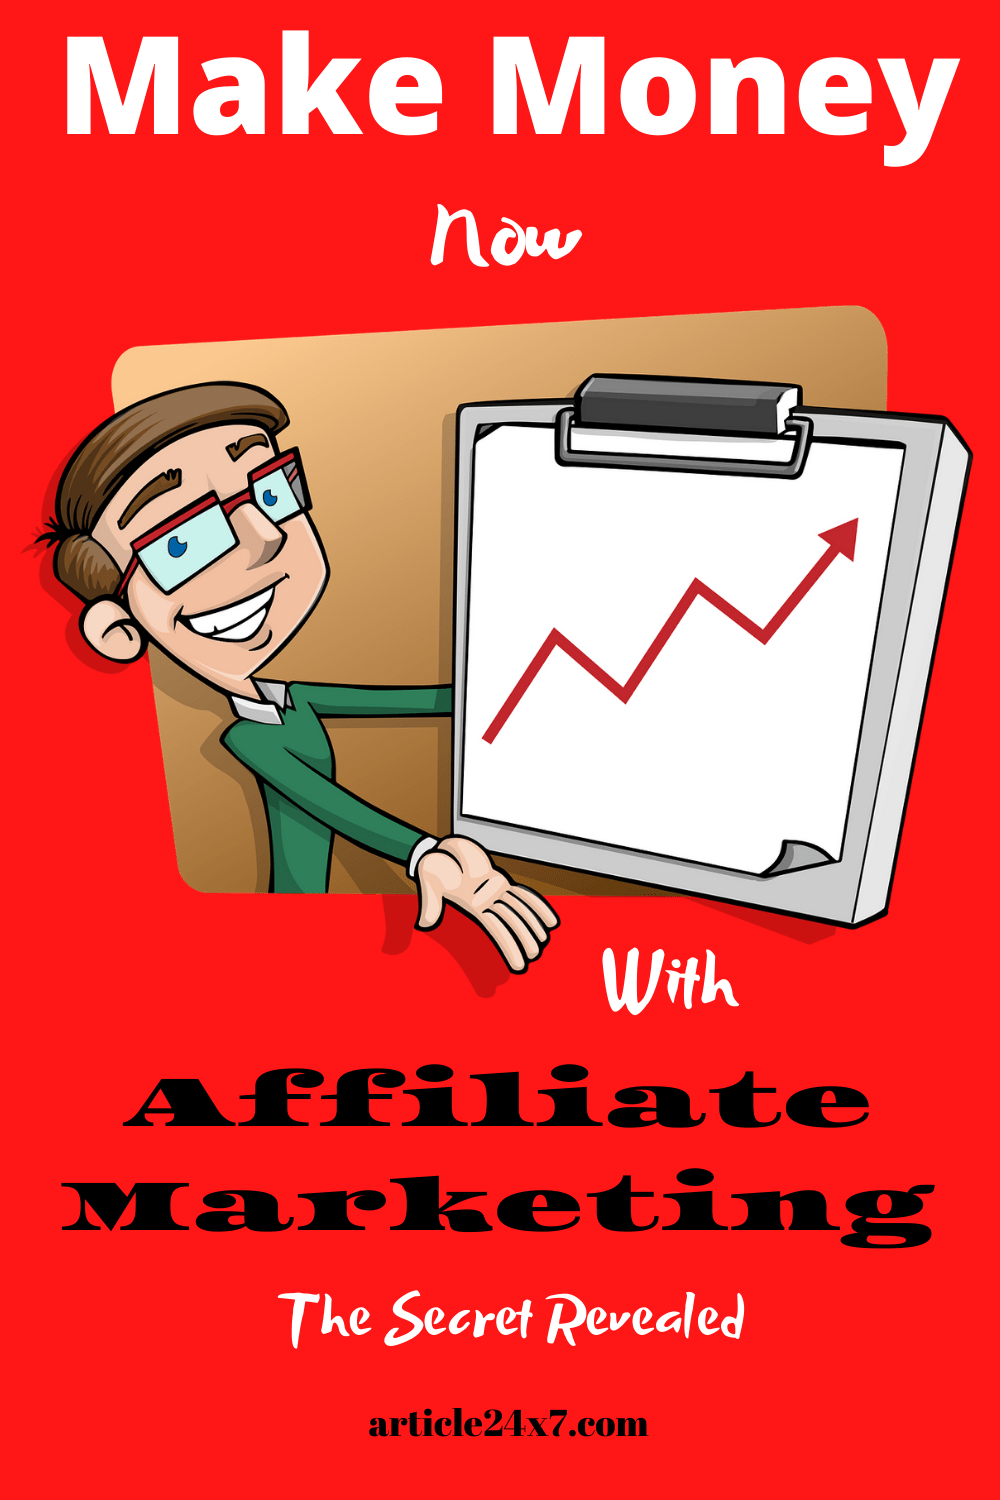 Make Money Now With Affiliate Marketing